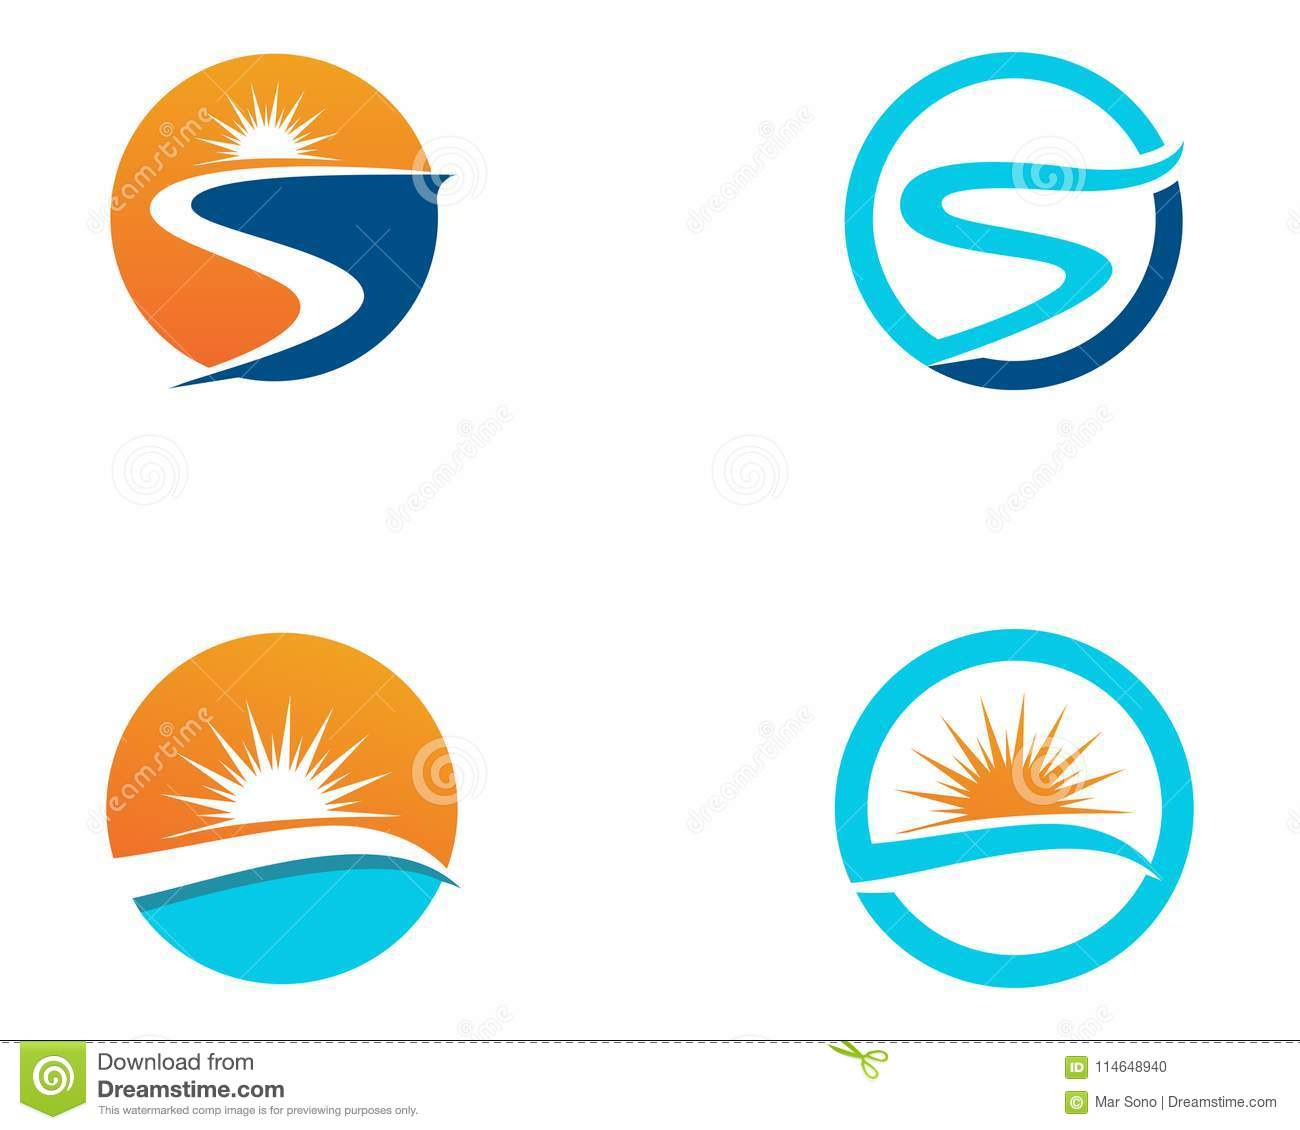 river logo template vector icon illustration app stock vector